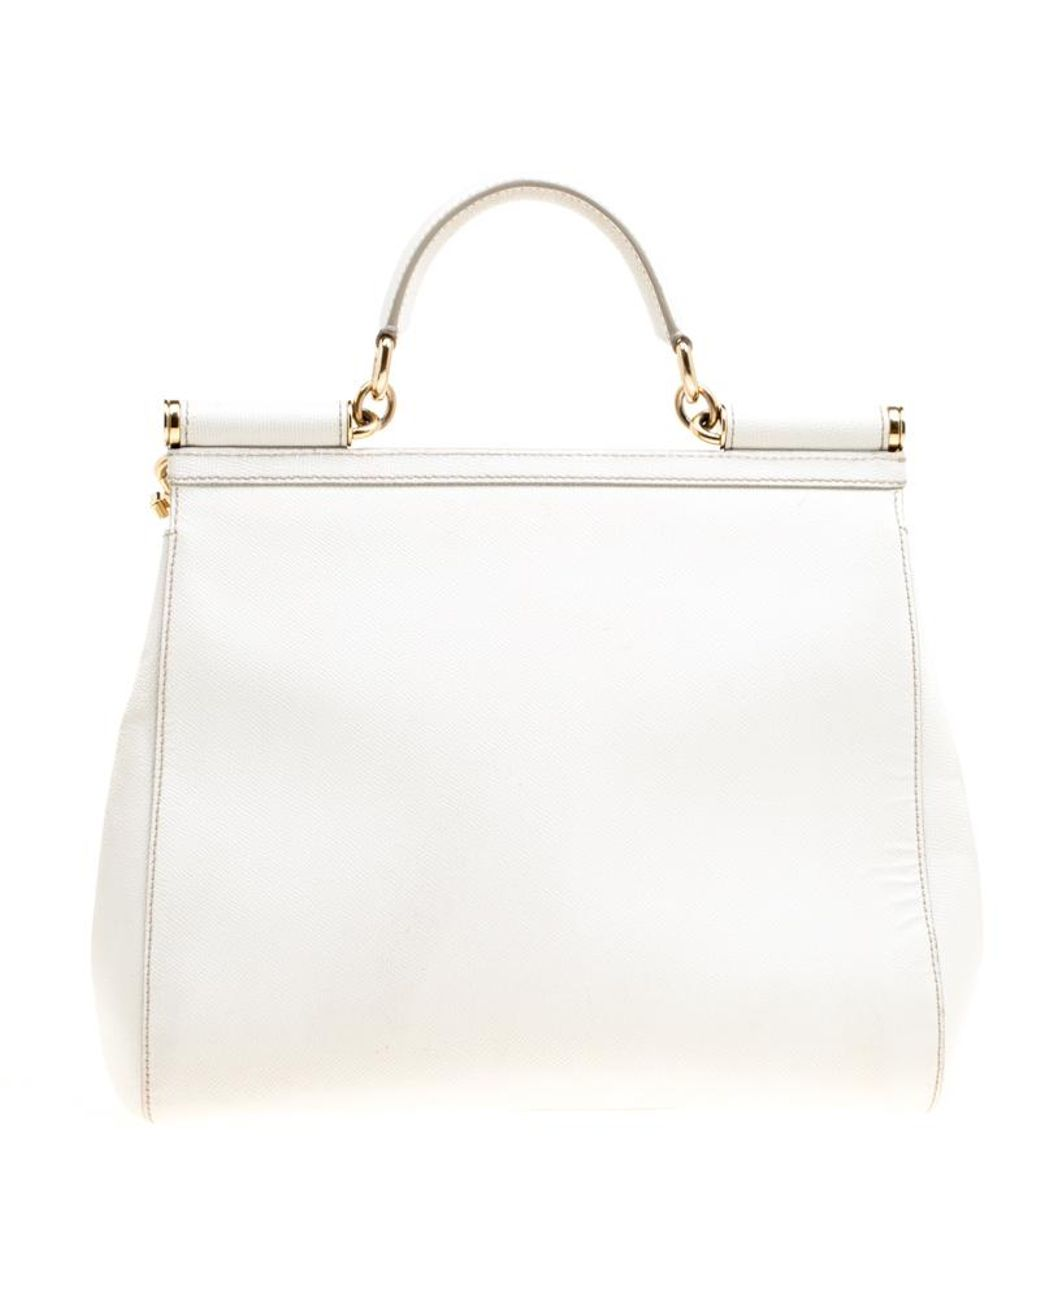 37f95914a71 Dolce & Gabbana Off White Leather Large Miss Sicily Top Handle Bag in White  - Lyst